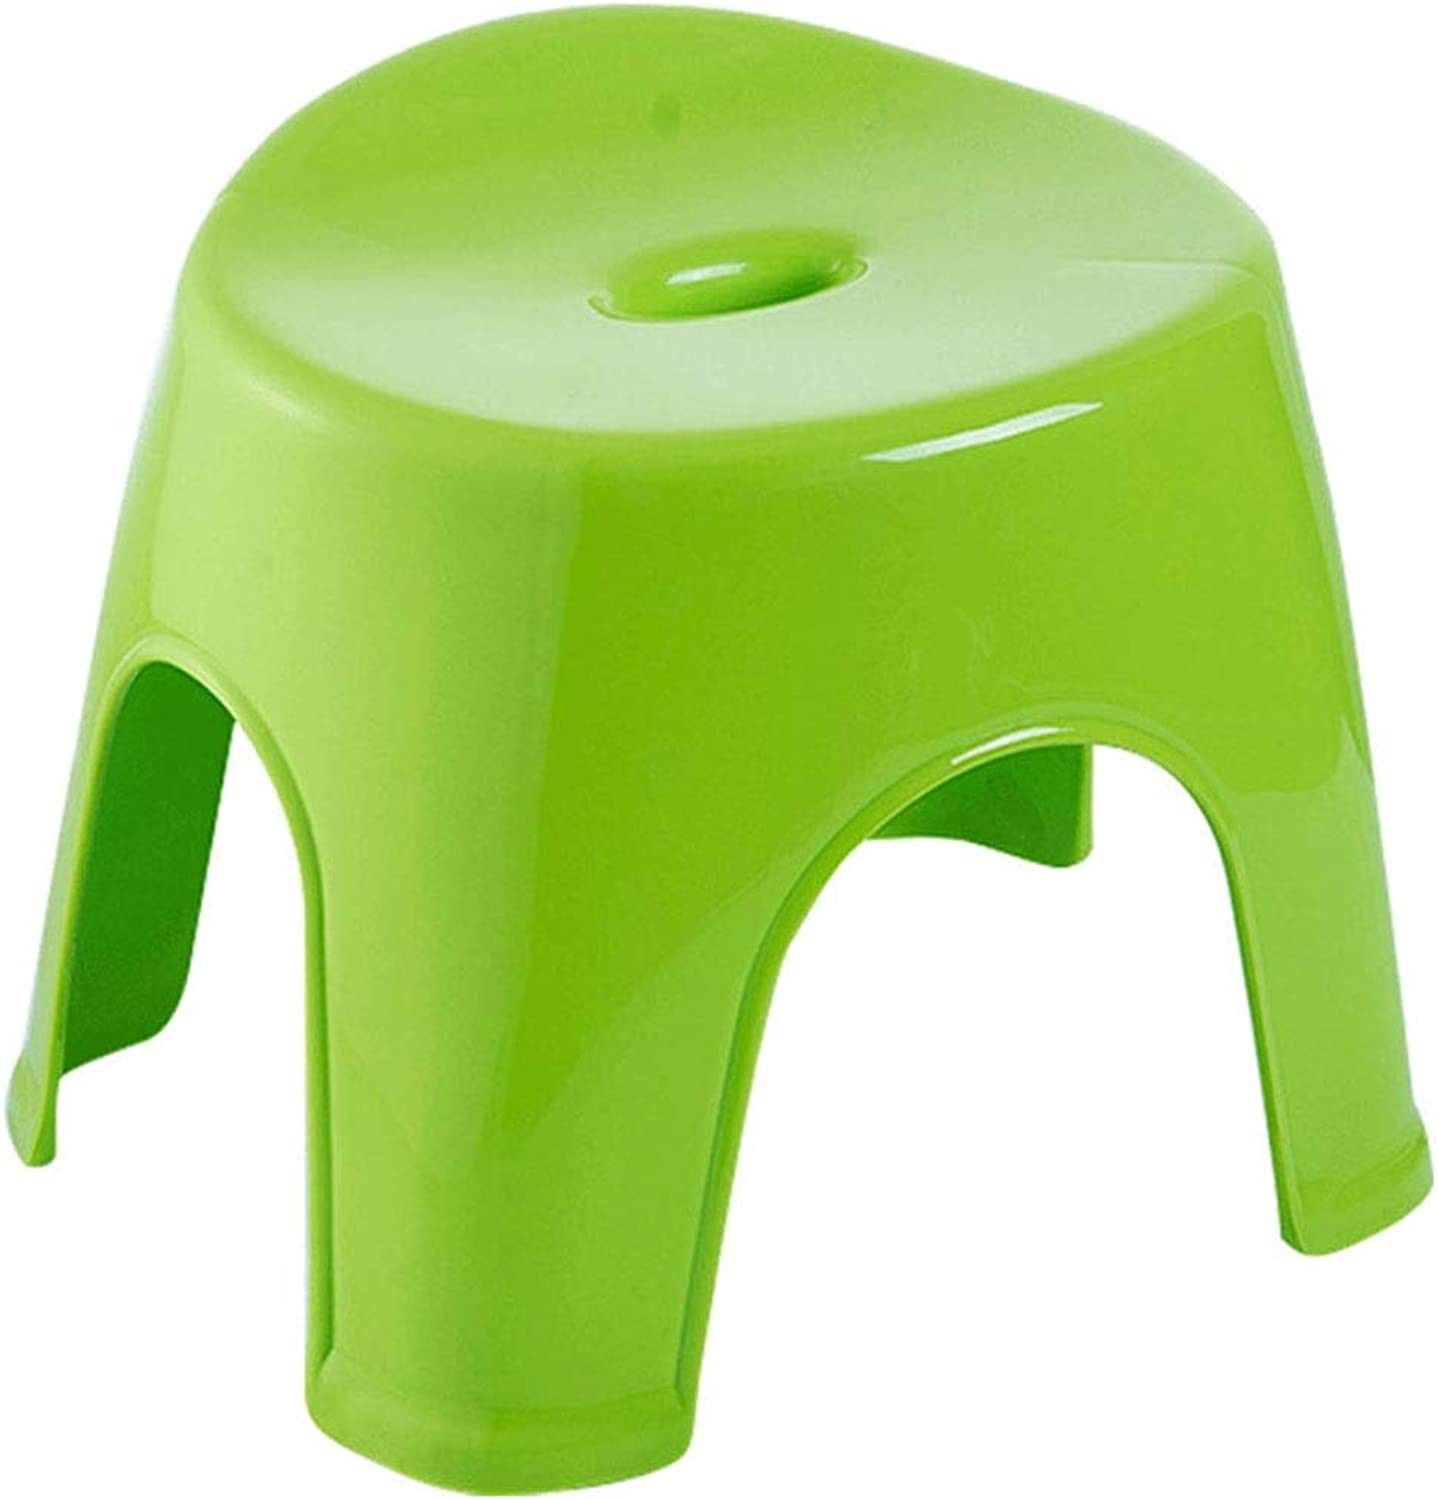 Tea Table Footstool, Plastic Non-Slip Breathable Small Stool Kindergarten Classroom Dedicated Small Bench Height 24-30CM (color   Green, Size   34.5  30  30CM)